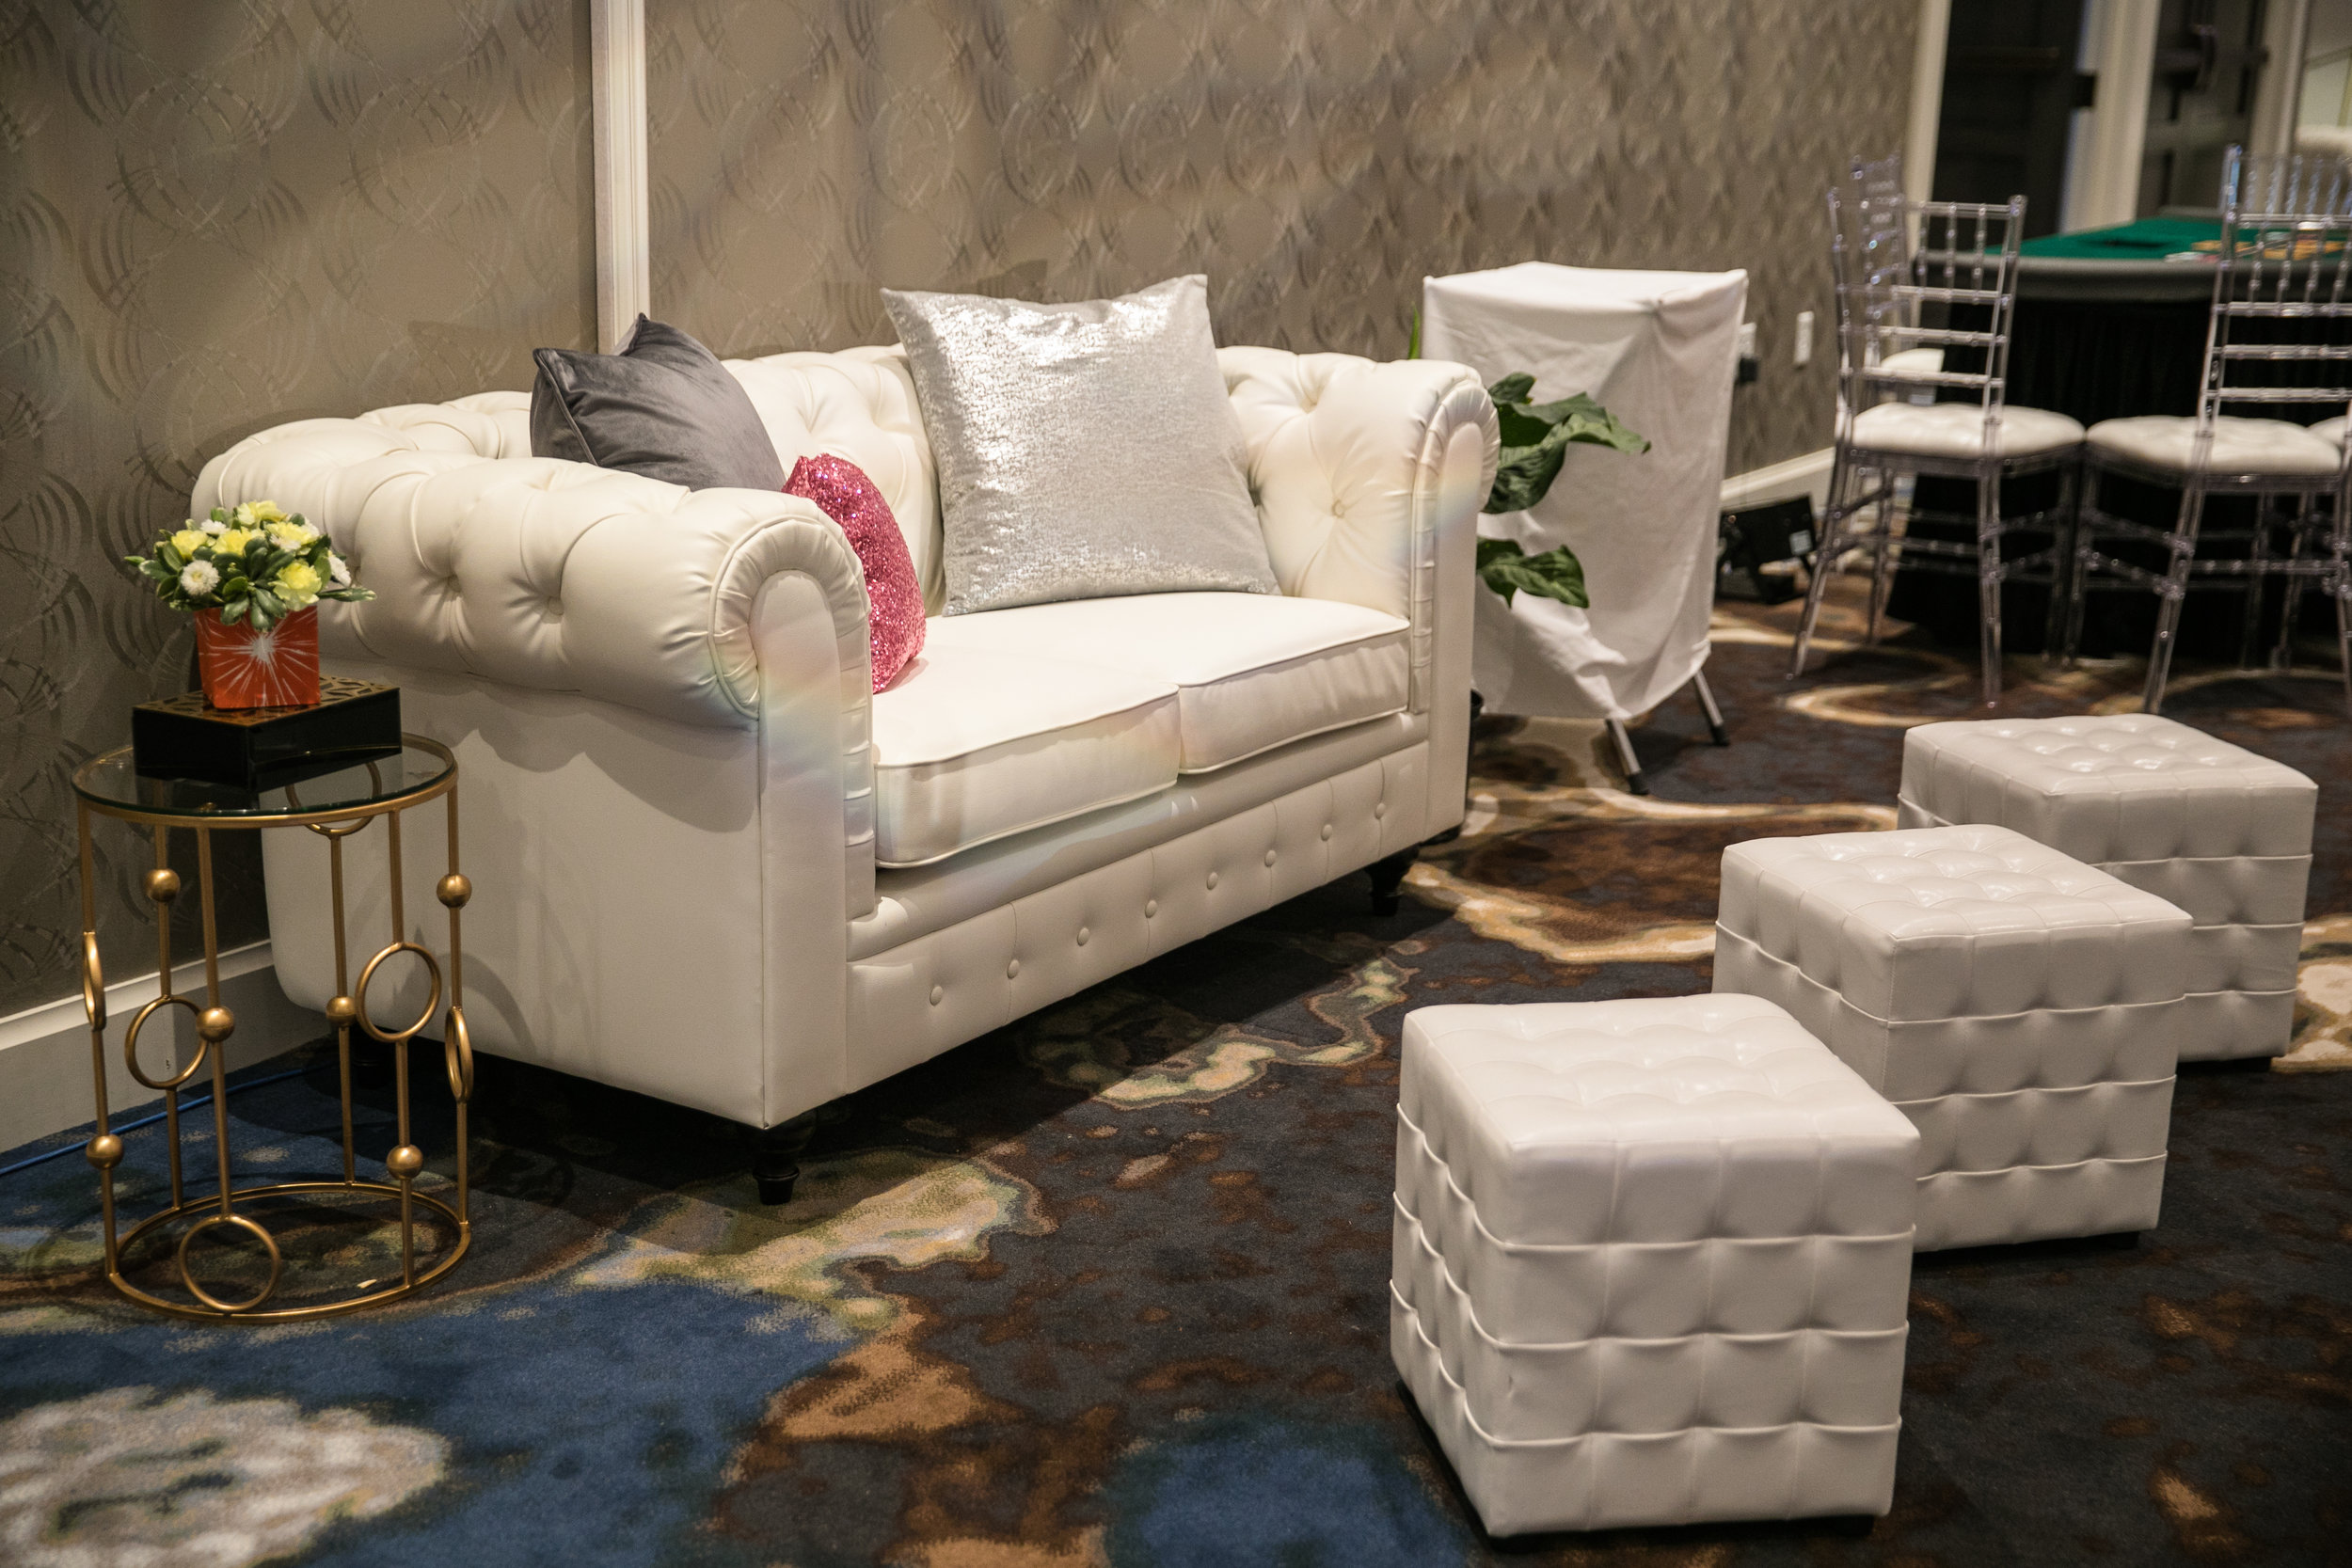 accessories- side tables, small ottomans